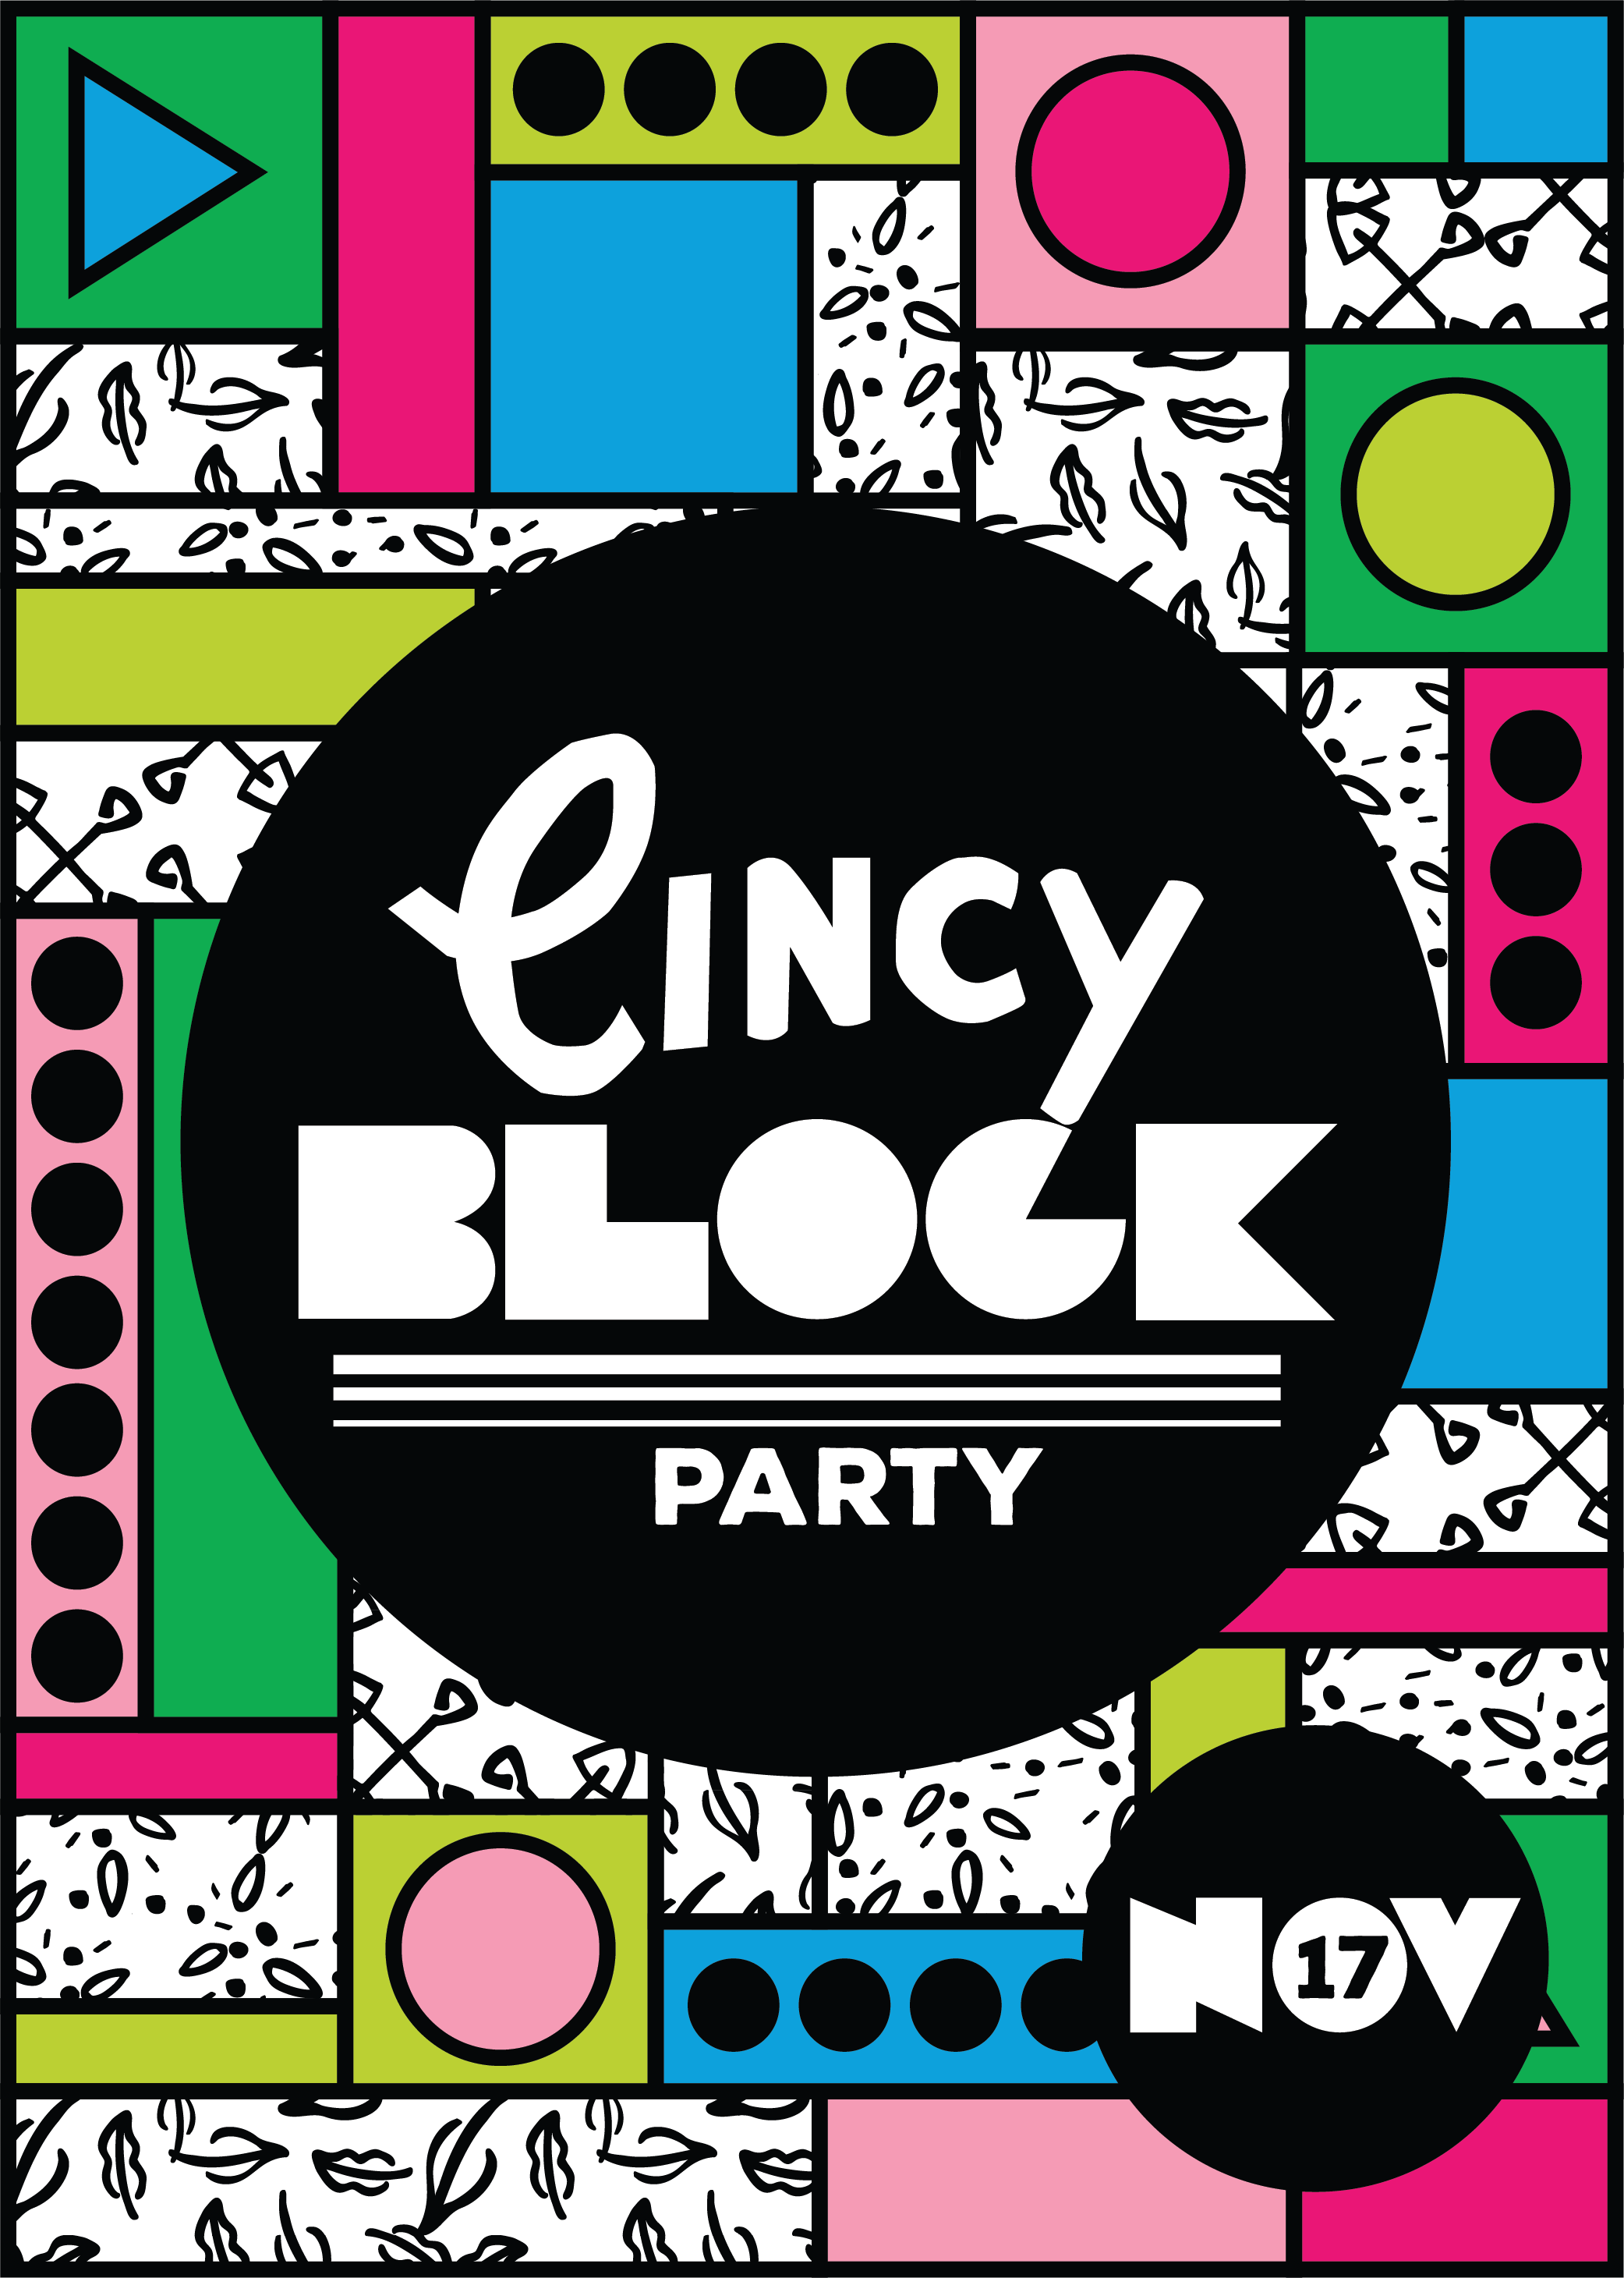 You're Invited to the Cincy Block Party!